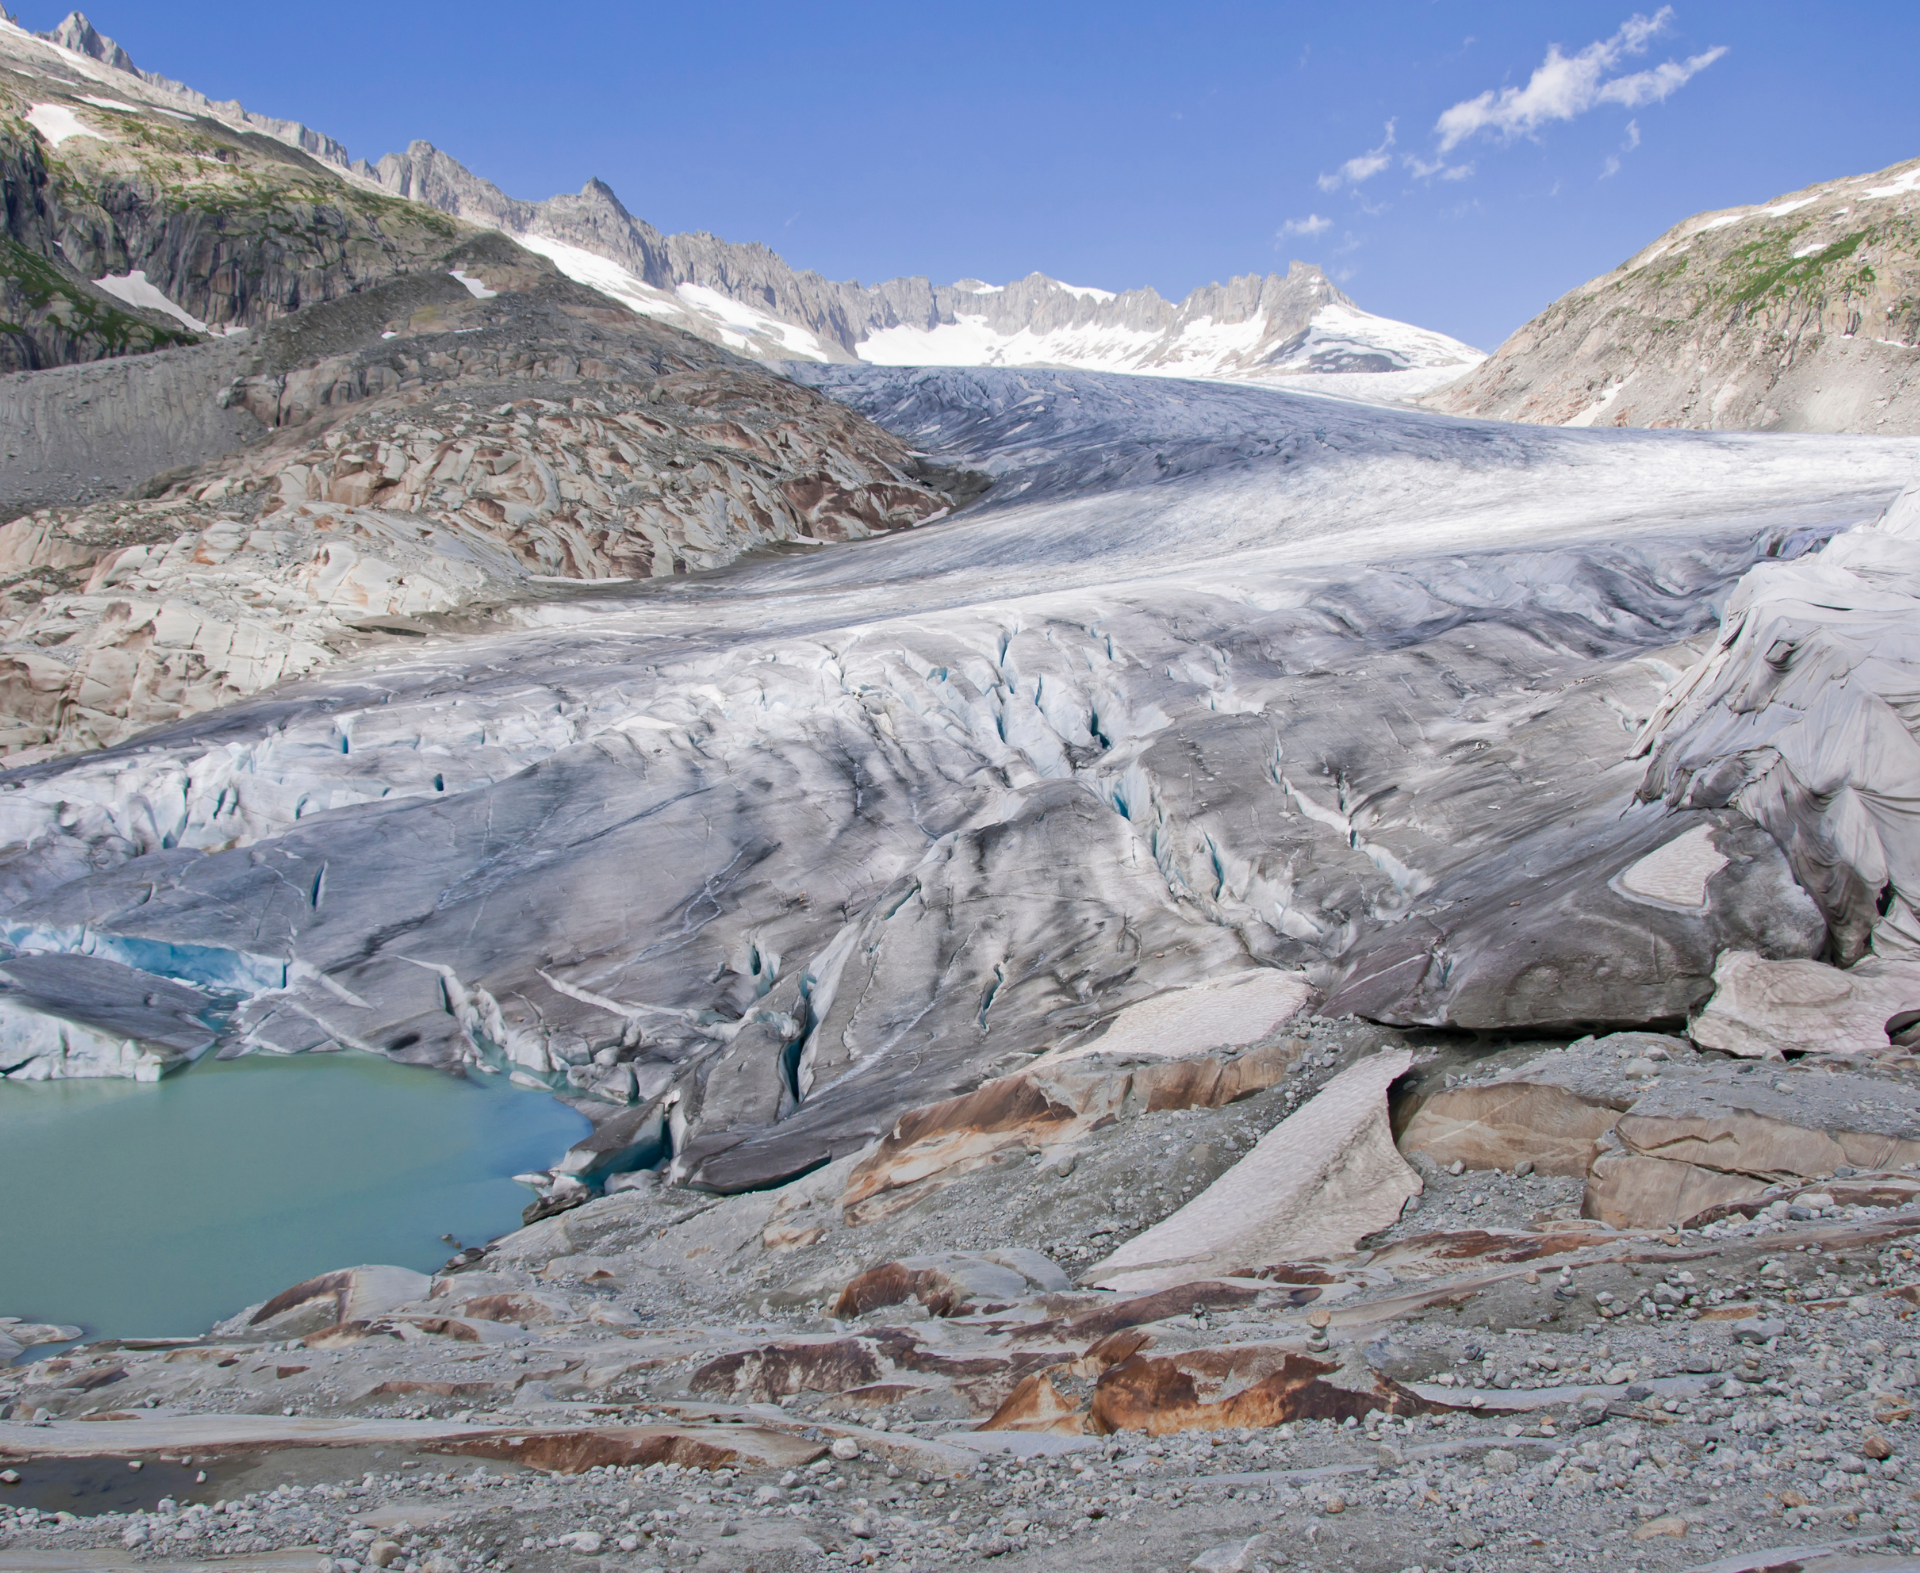 Rhône Glacier Photo by Buba1955_Getty Images